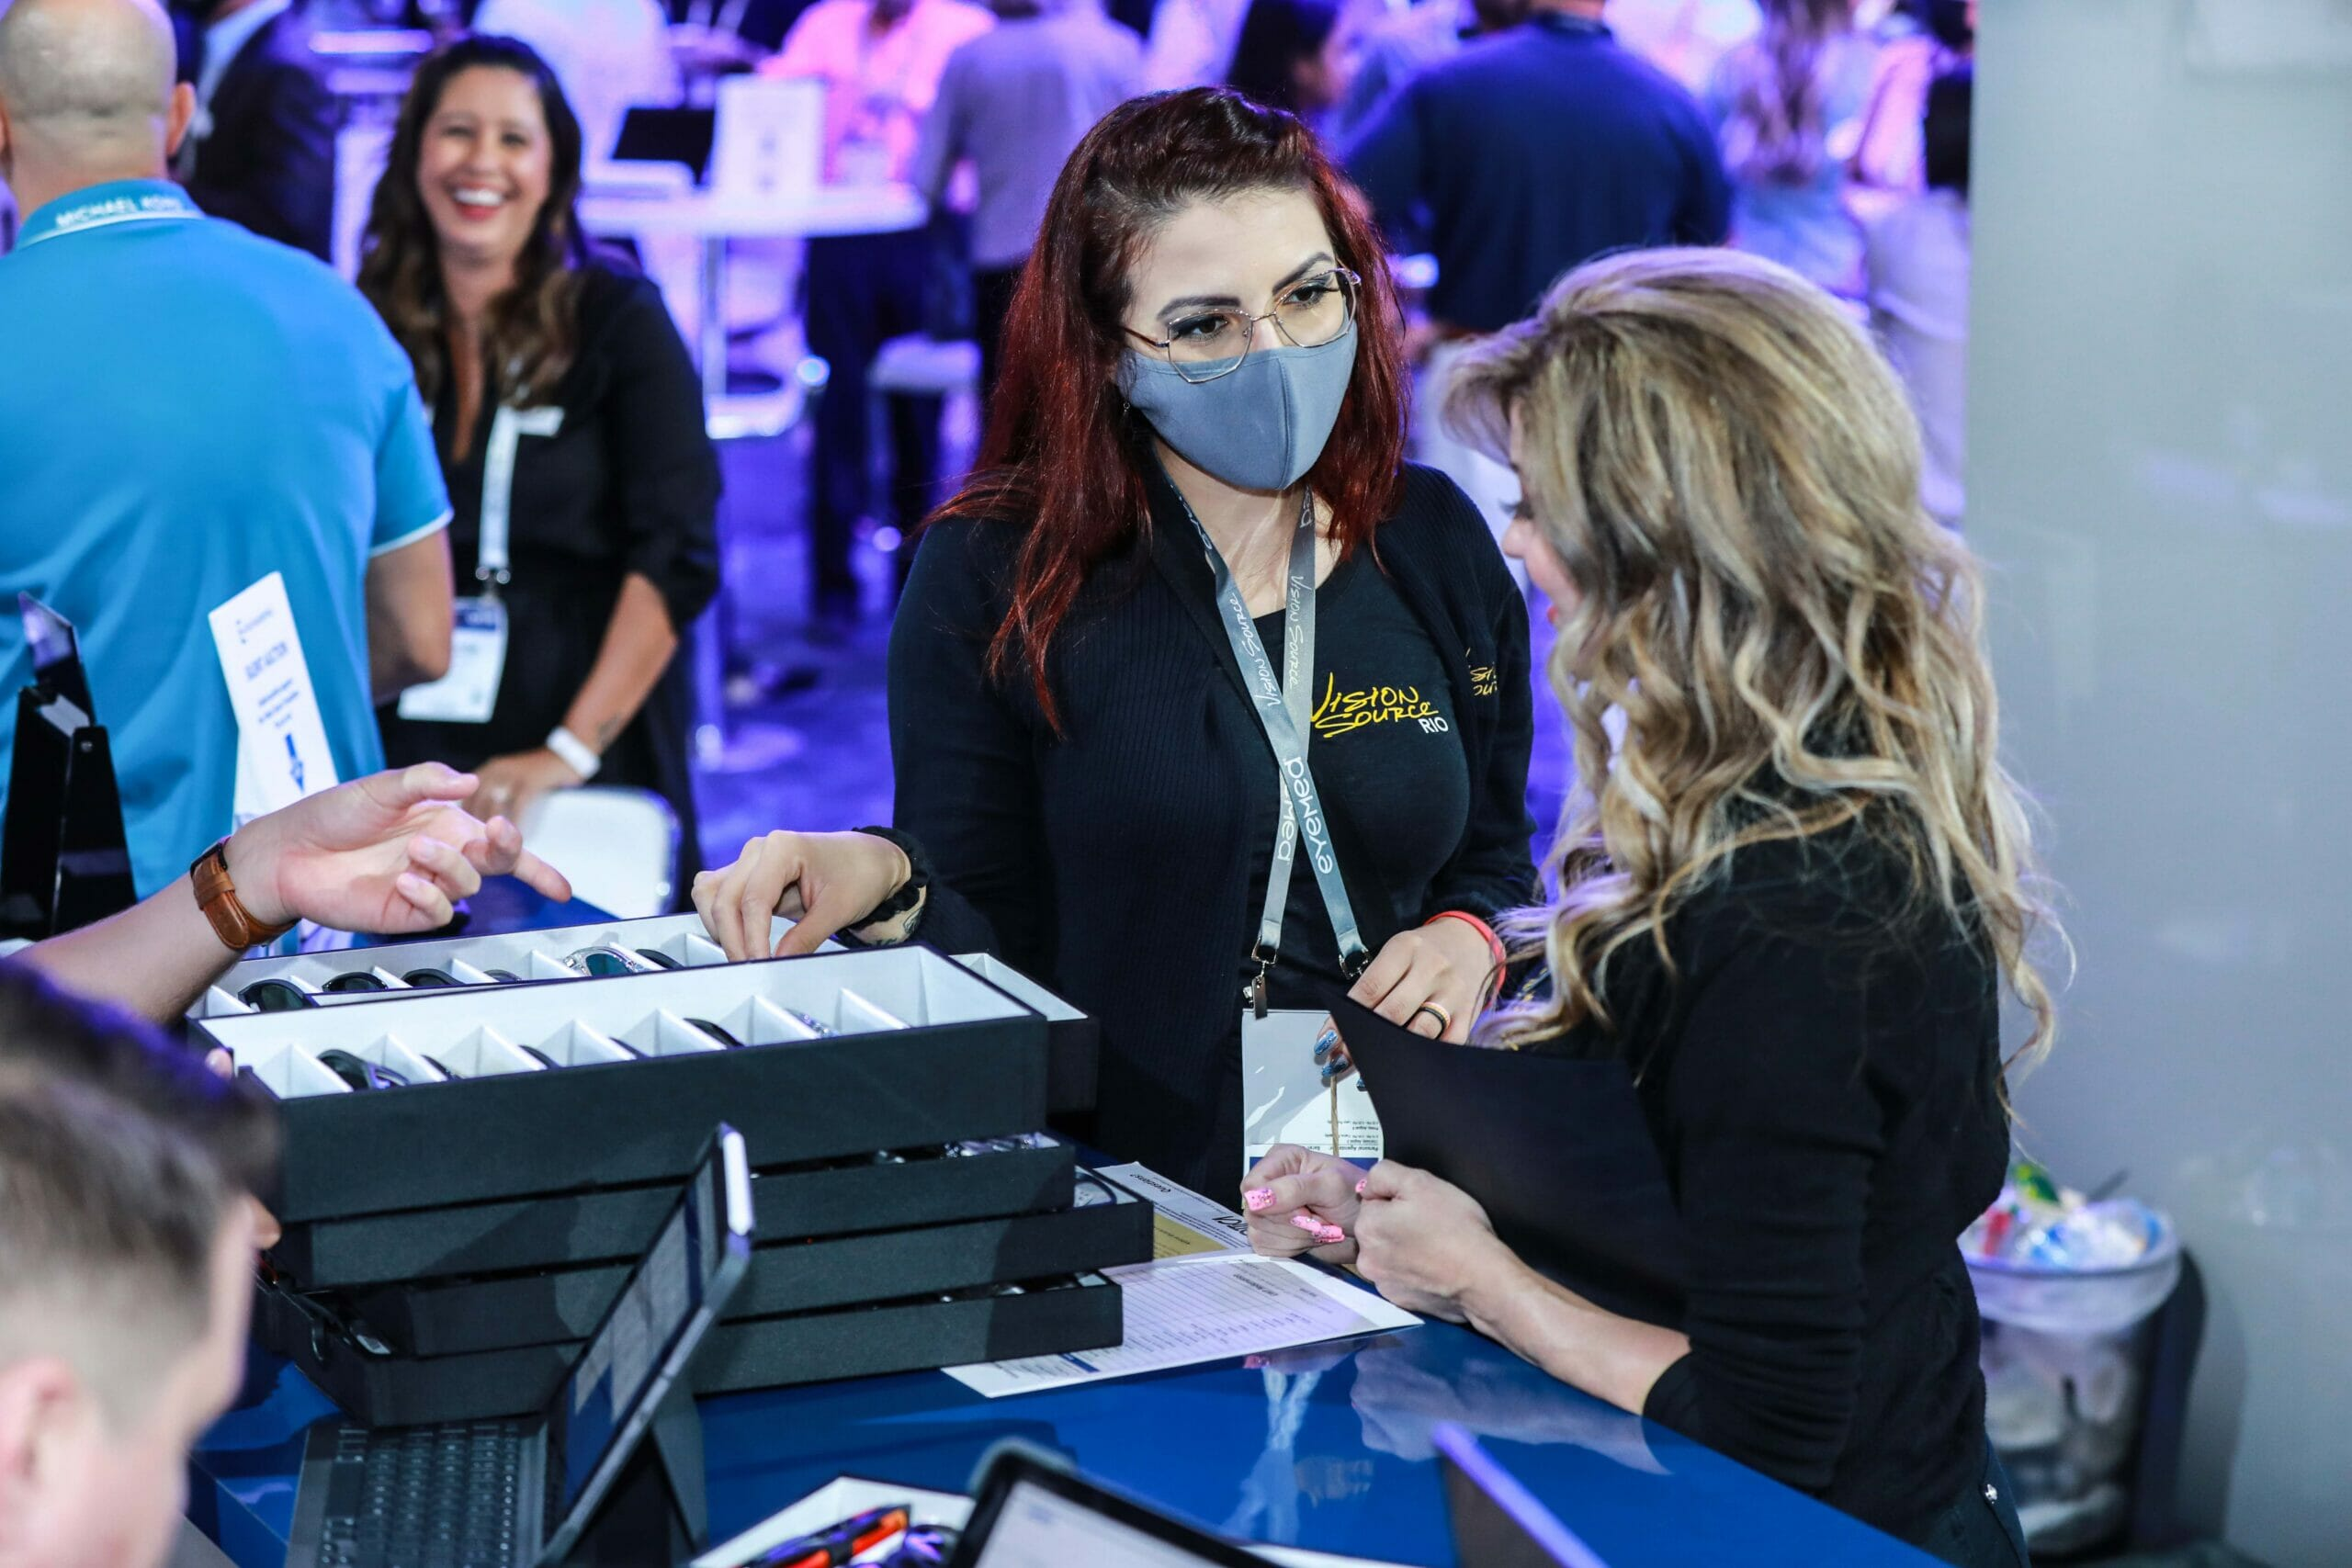 Convention, Event and Tradeshow Photography of female Exhibitor showing attendee product.